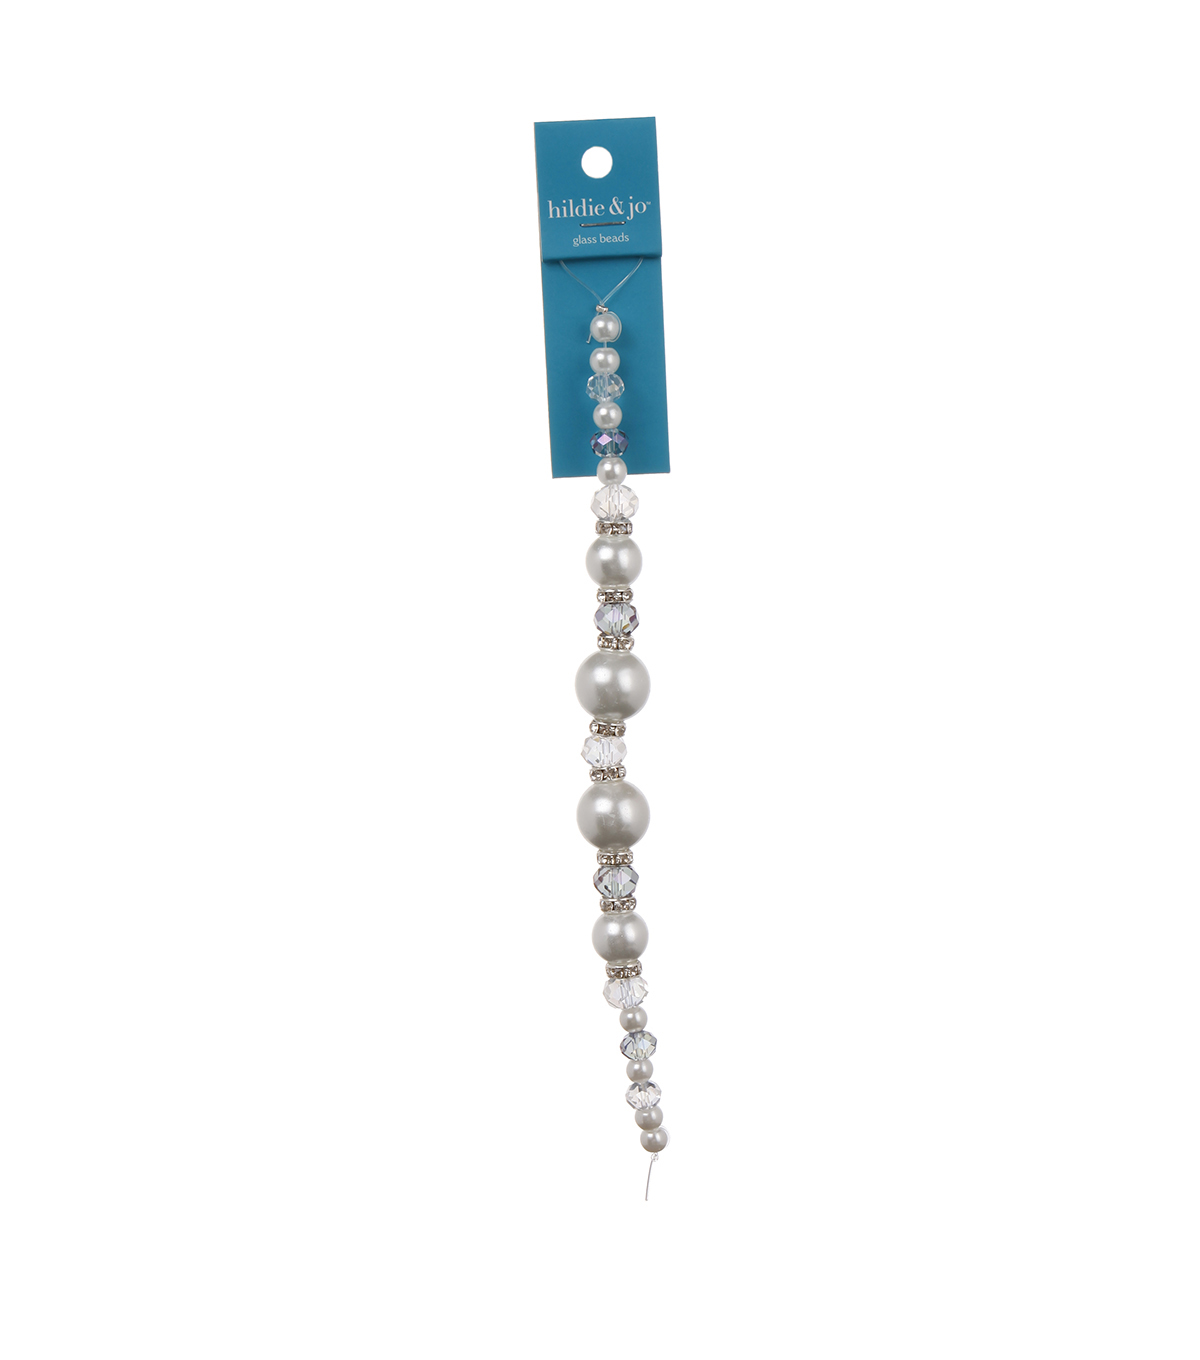 Advantus/Sulyn 7 in Socialite Ballroom Bead Strand, Touch of Grey-Blue